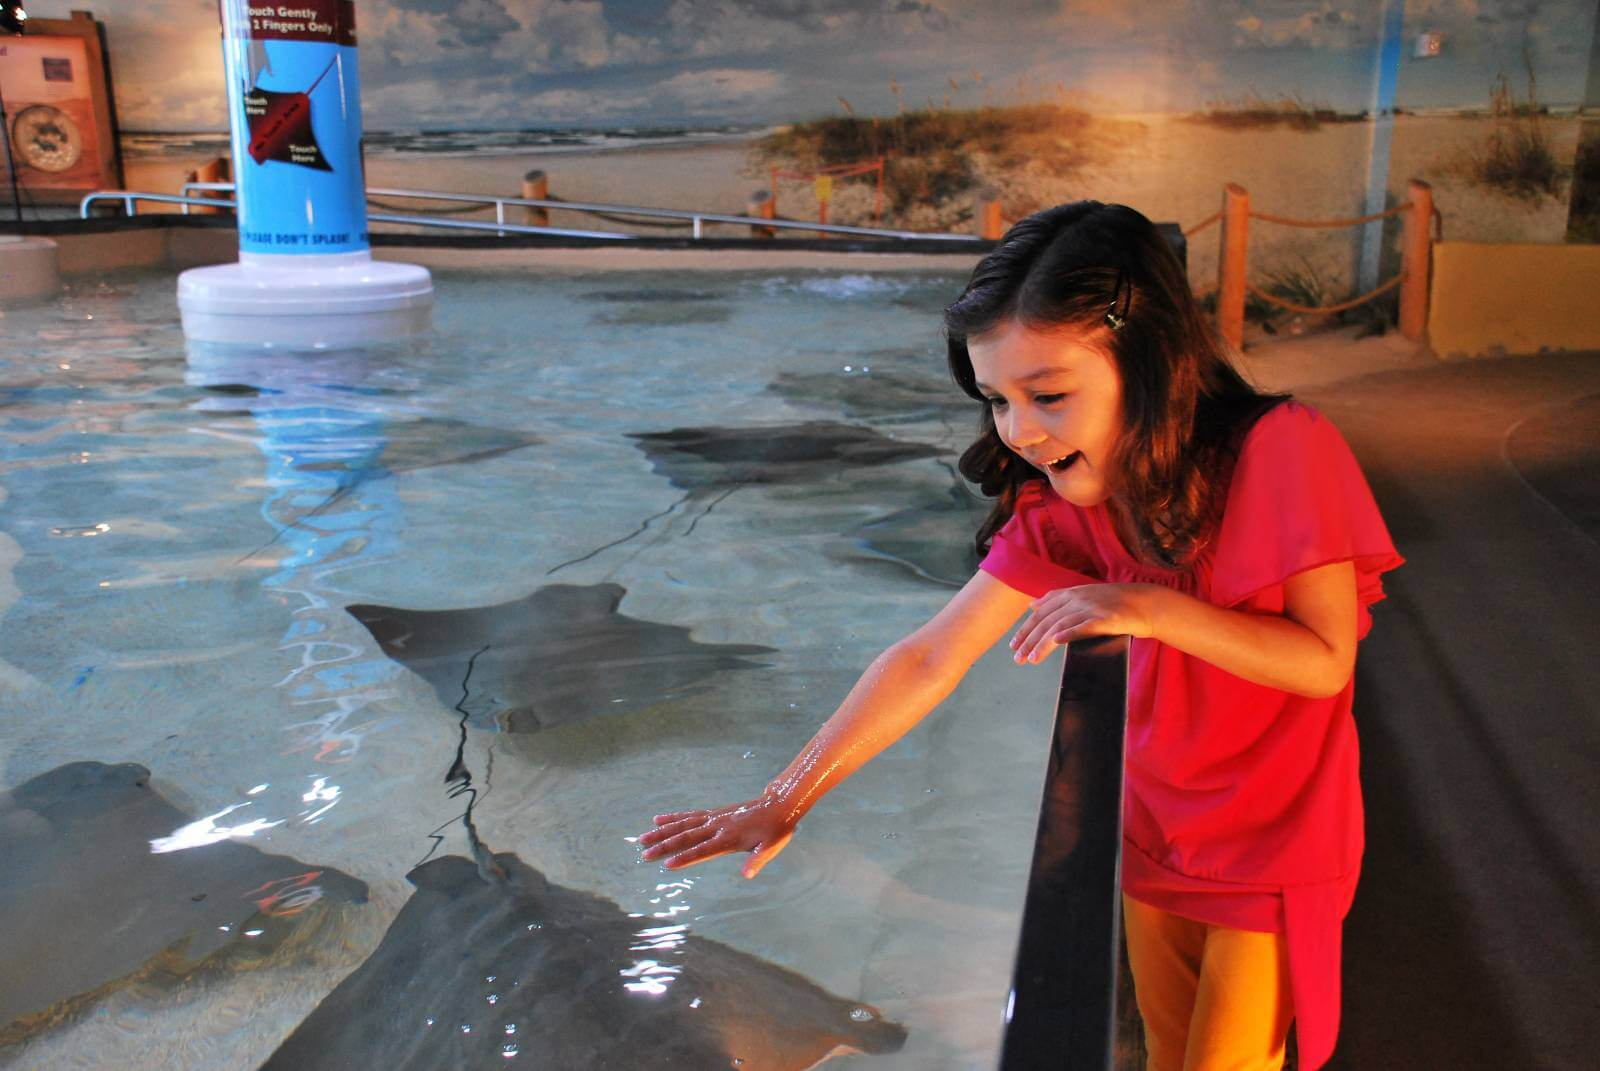 Kids get a chance to touch stingrays at Stingray Beach at The Florida Aquarium in Tampa. Photo credit The Florida Aquarium.